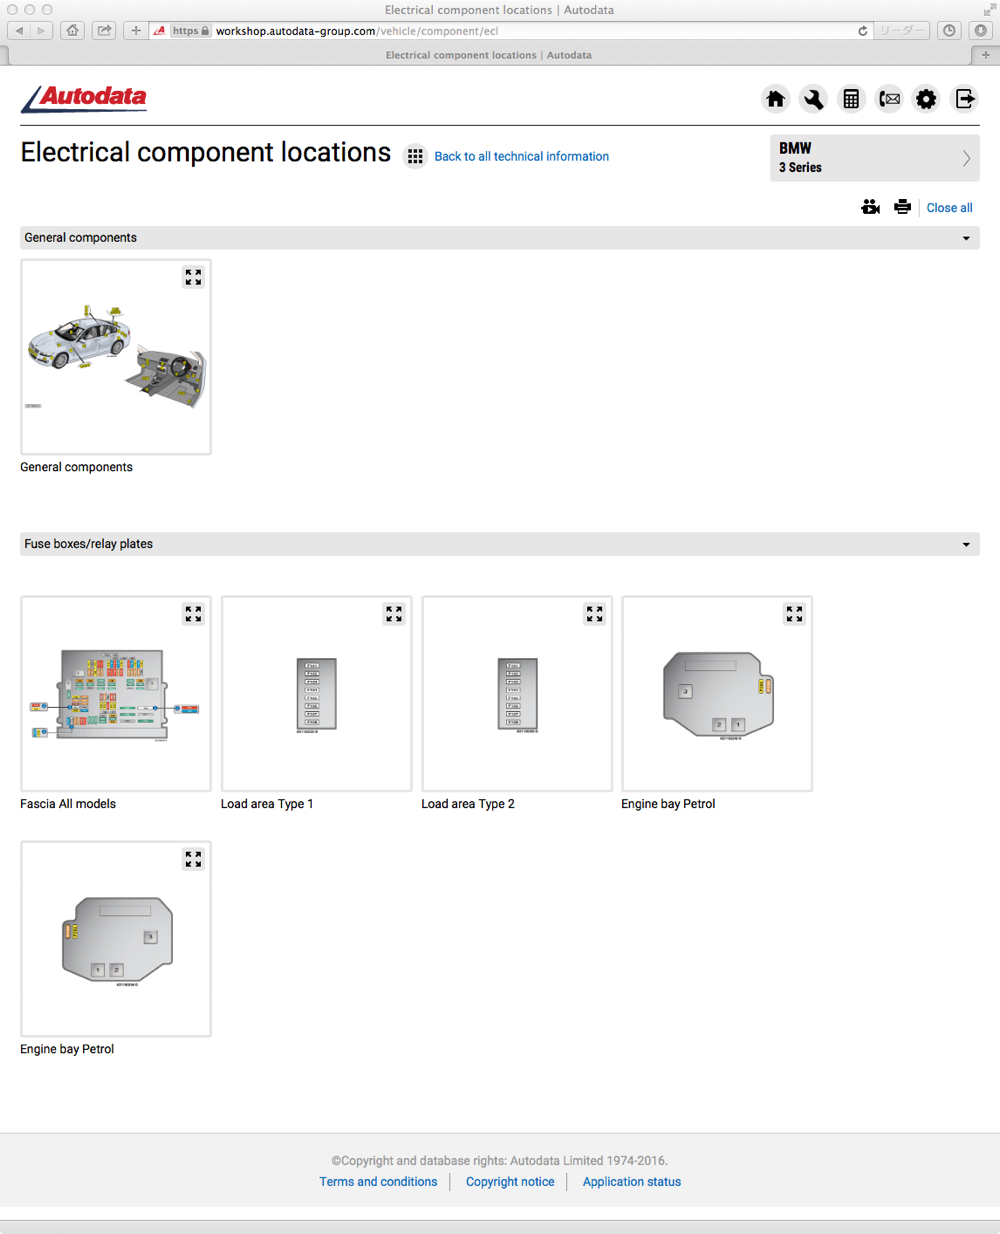 Electrical component locations